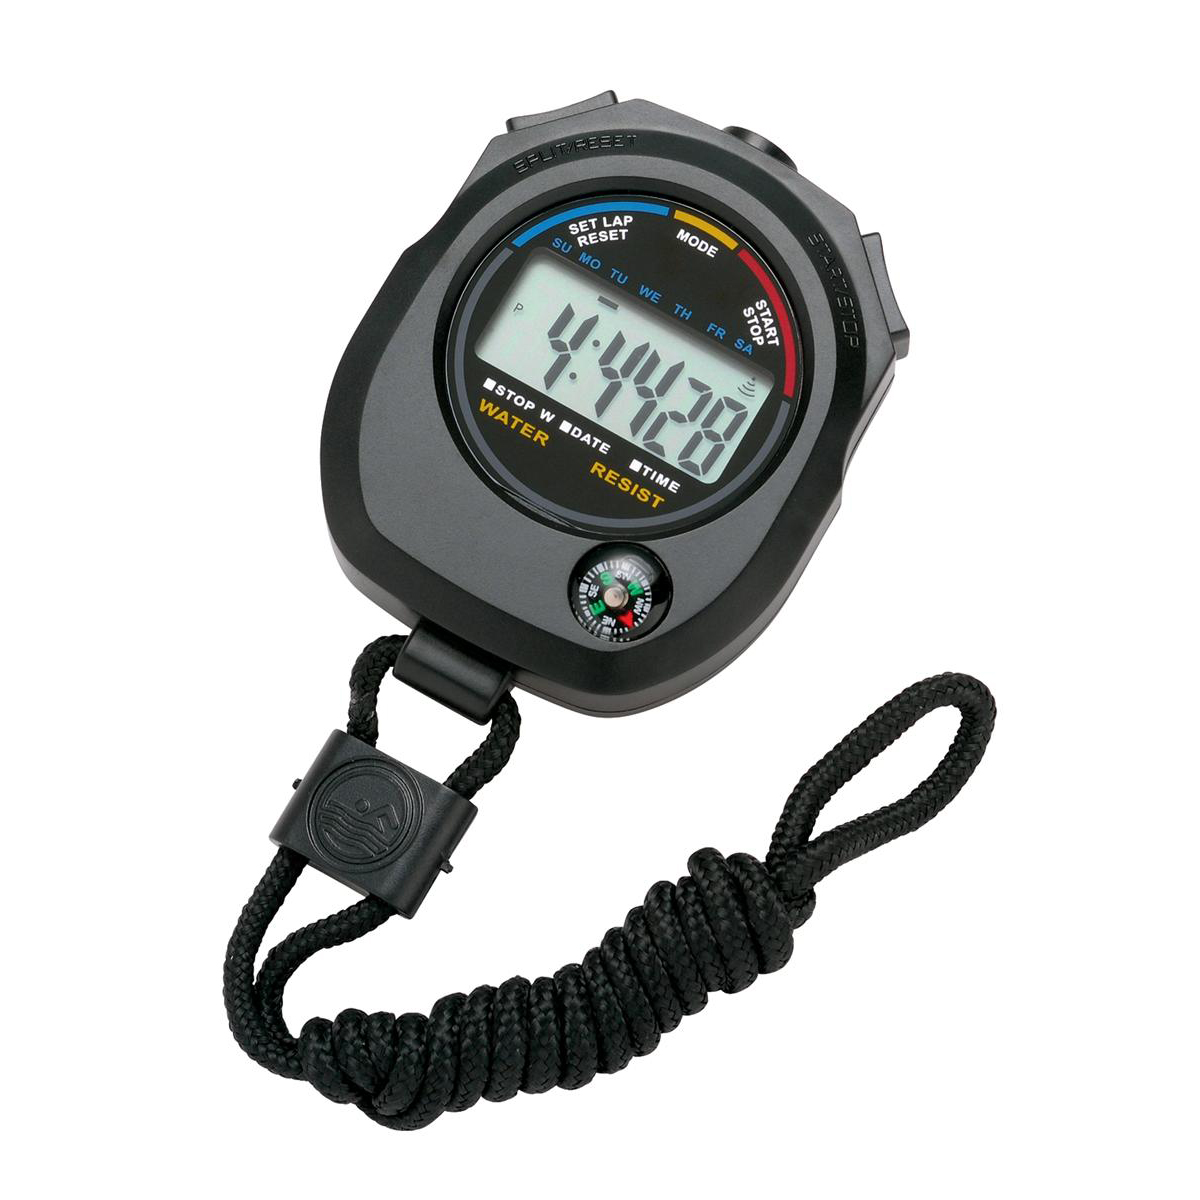 Stop watch Stopwatch Water Resistant Battery Operated Black